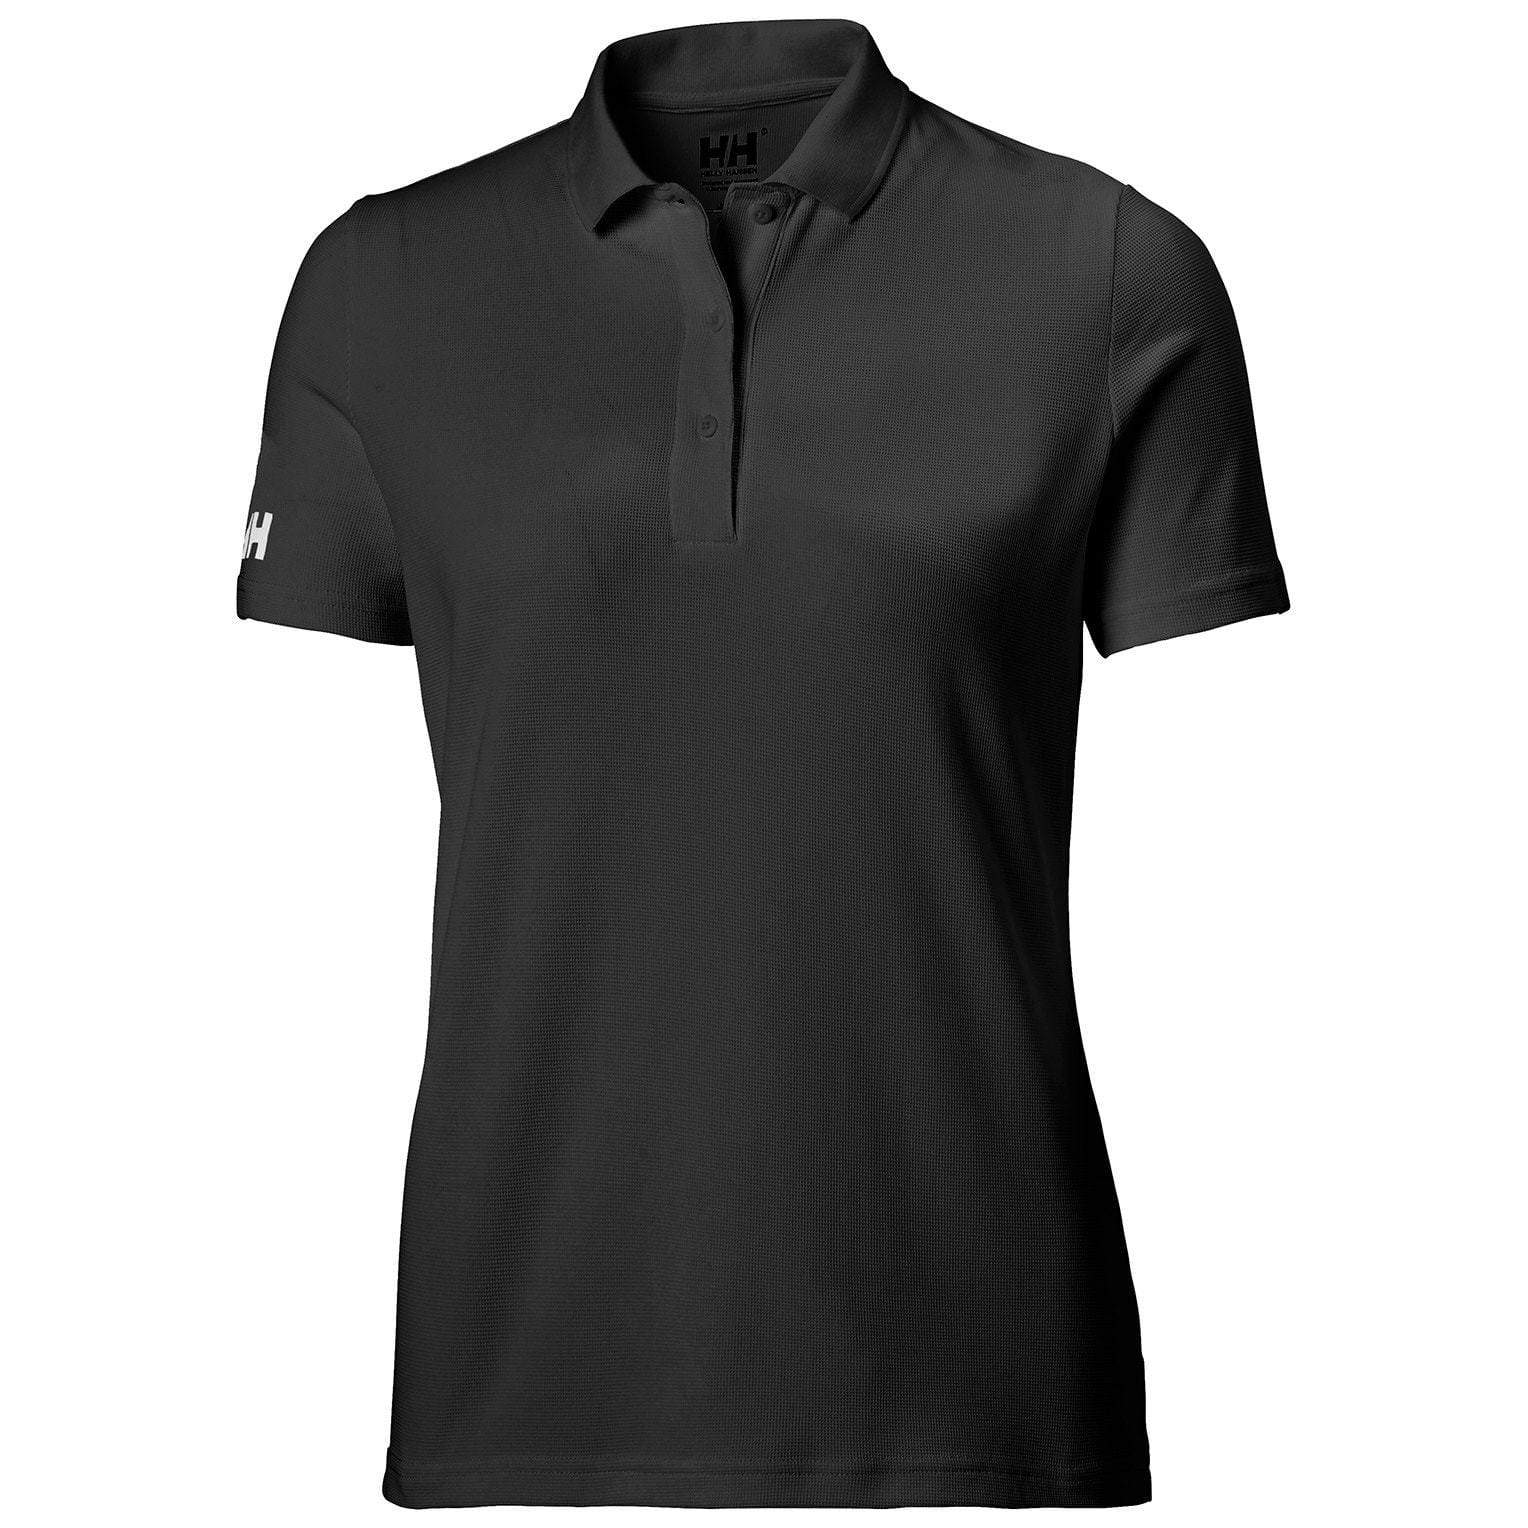 Helly Hansen Polos XS / Black Helly Hansen - Women's Crew Tech Polo